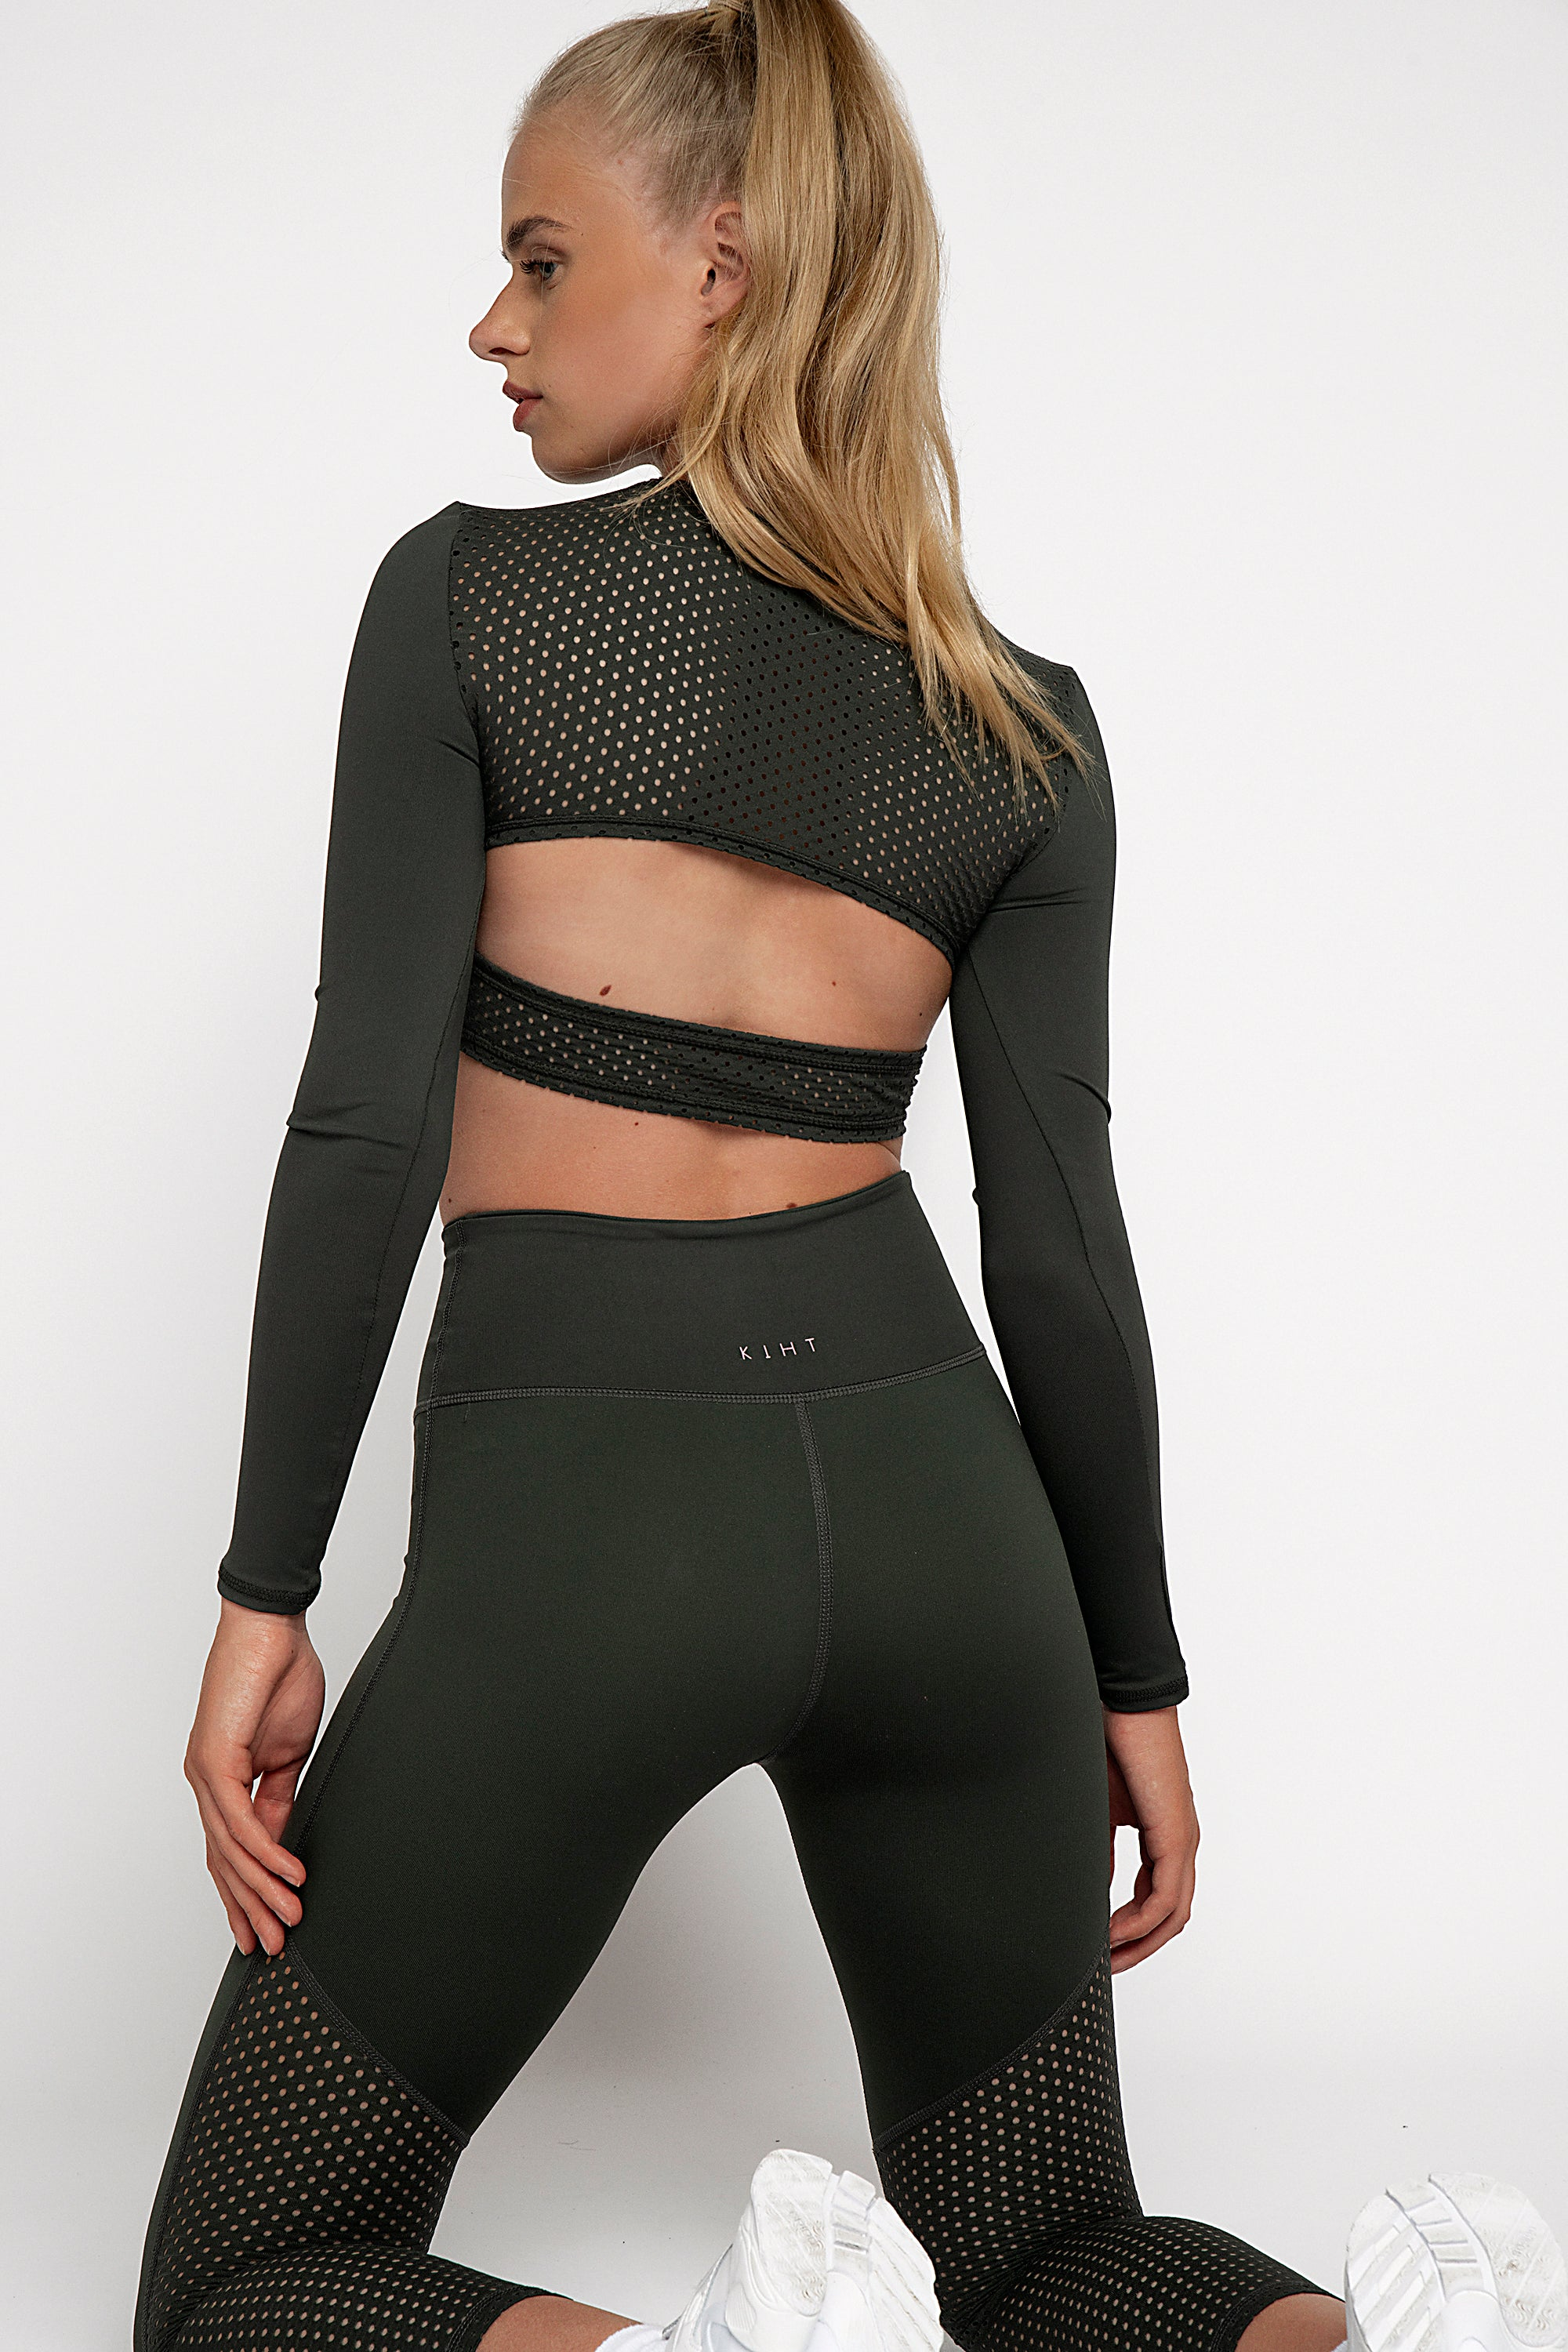 UK ethical activewear Long sleeve gym crop top in green jungle khaki colour with punched panel back detailing on back